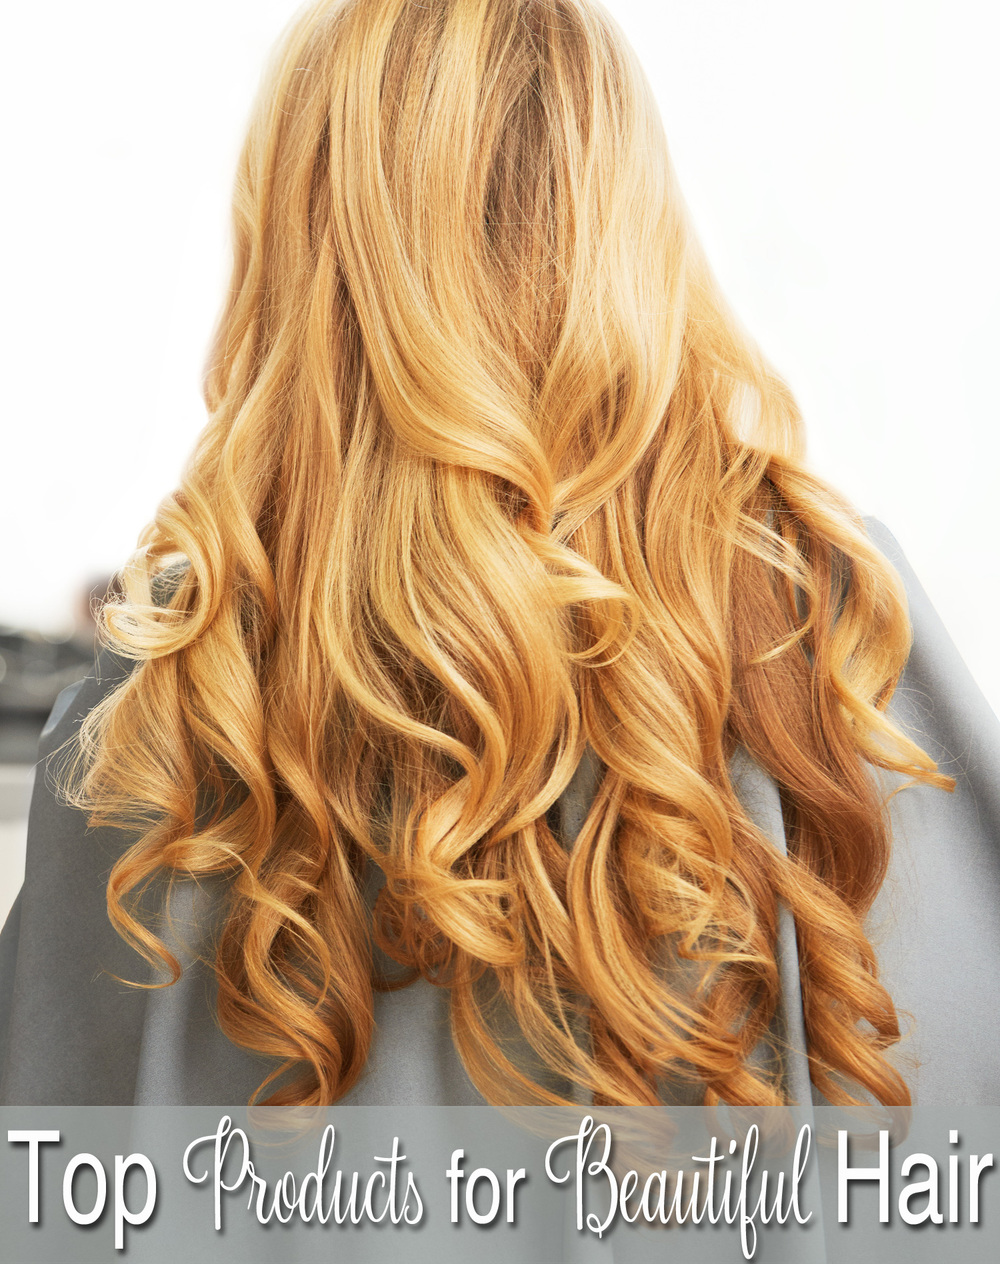 Top Hair Products for Beautiful Hair